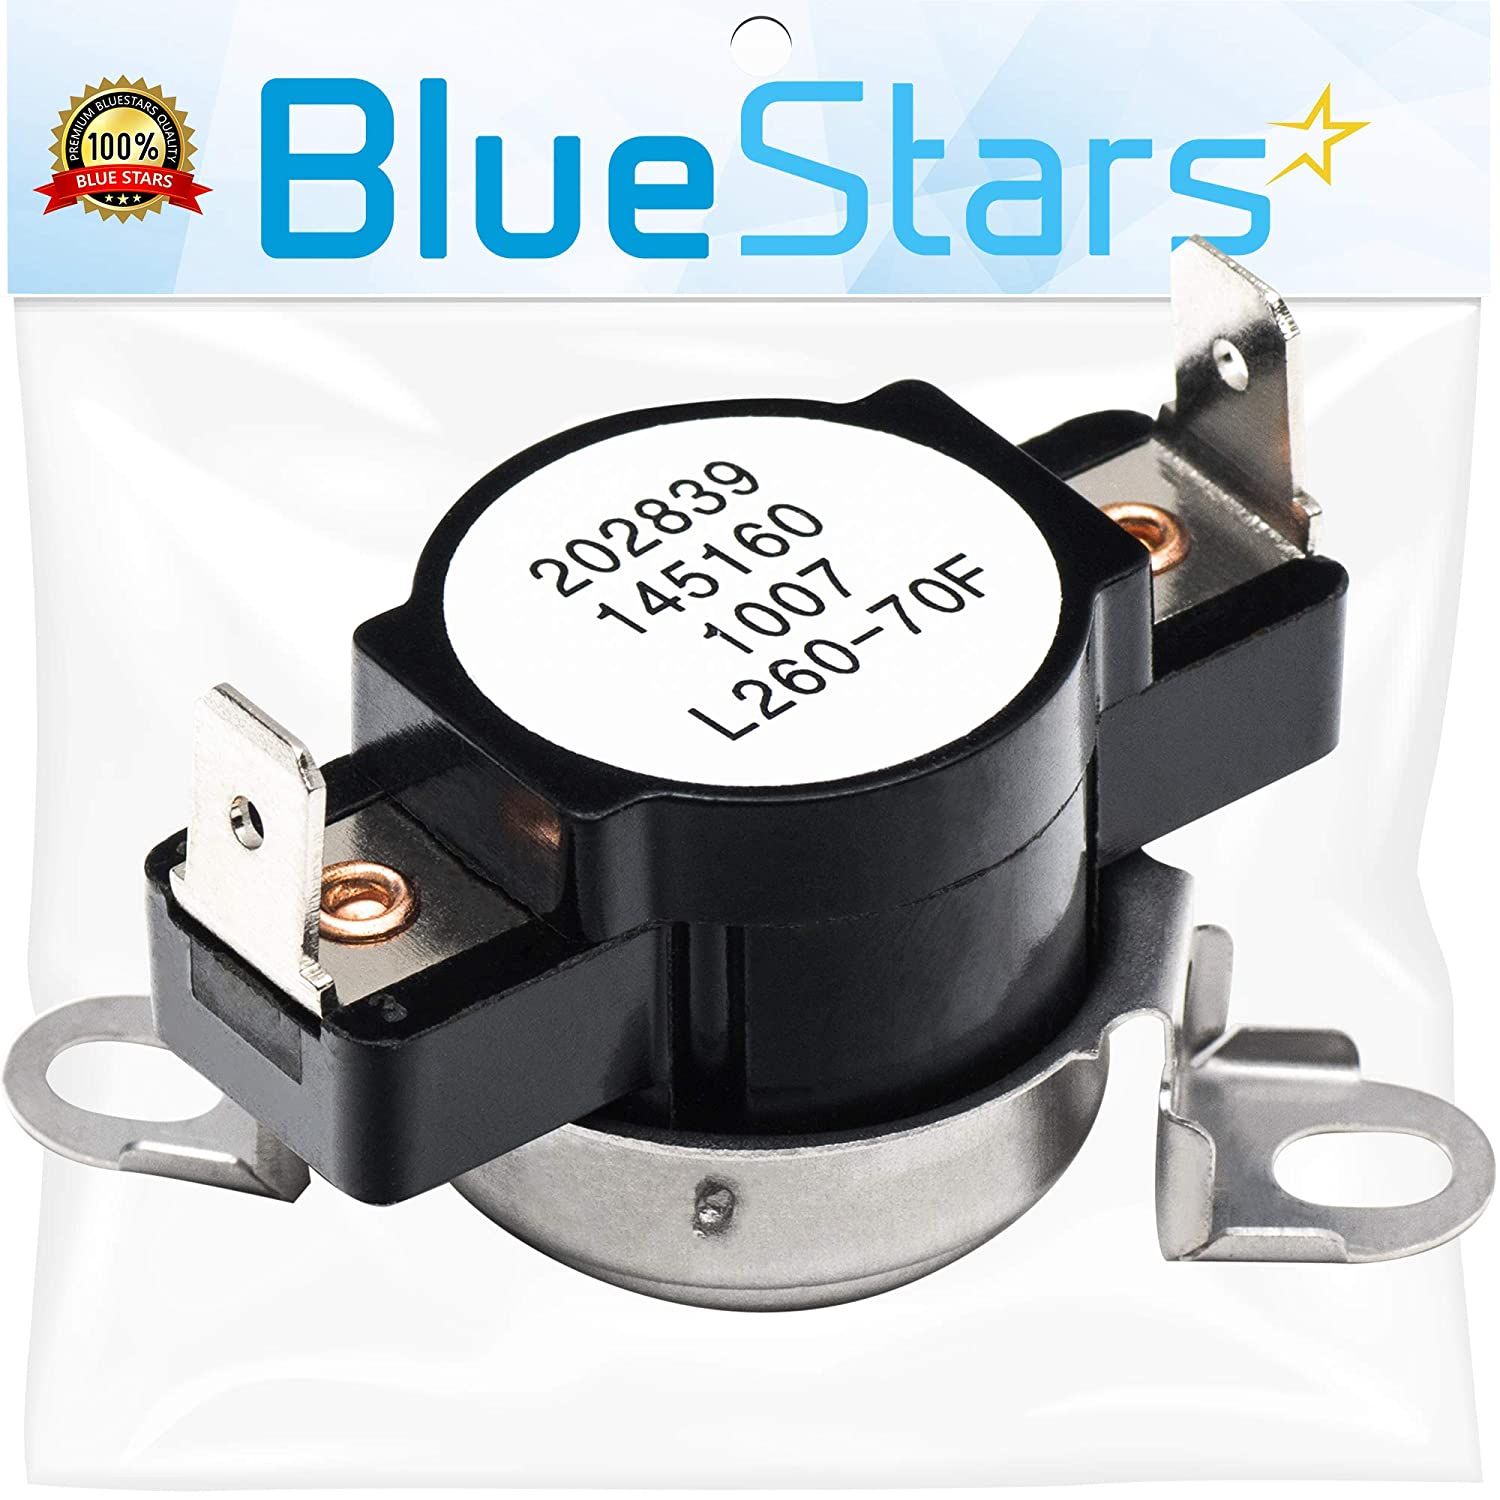 3204267 Safety Thermostat Replacement Part by Blue Stars- Exact Fit for Frigidaire Kenmore Electrolux Dryer- Replaces 508516 73204267 AP213147